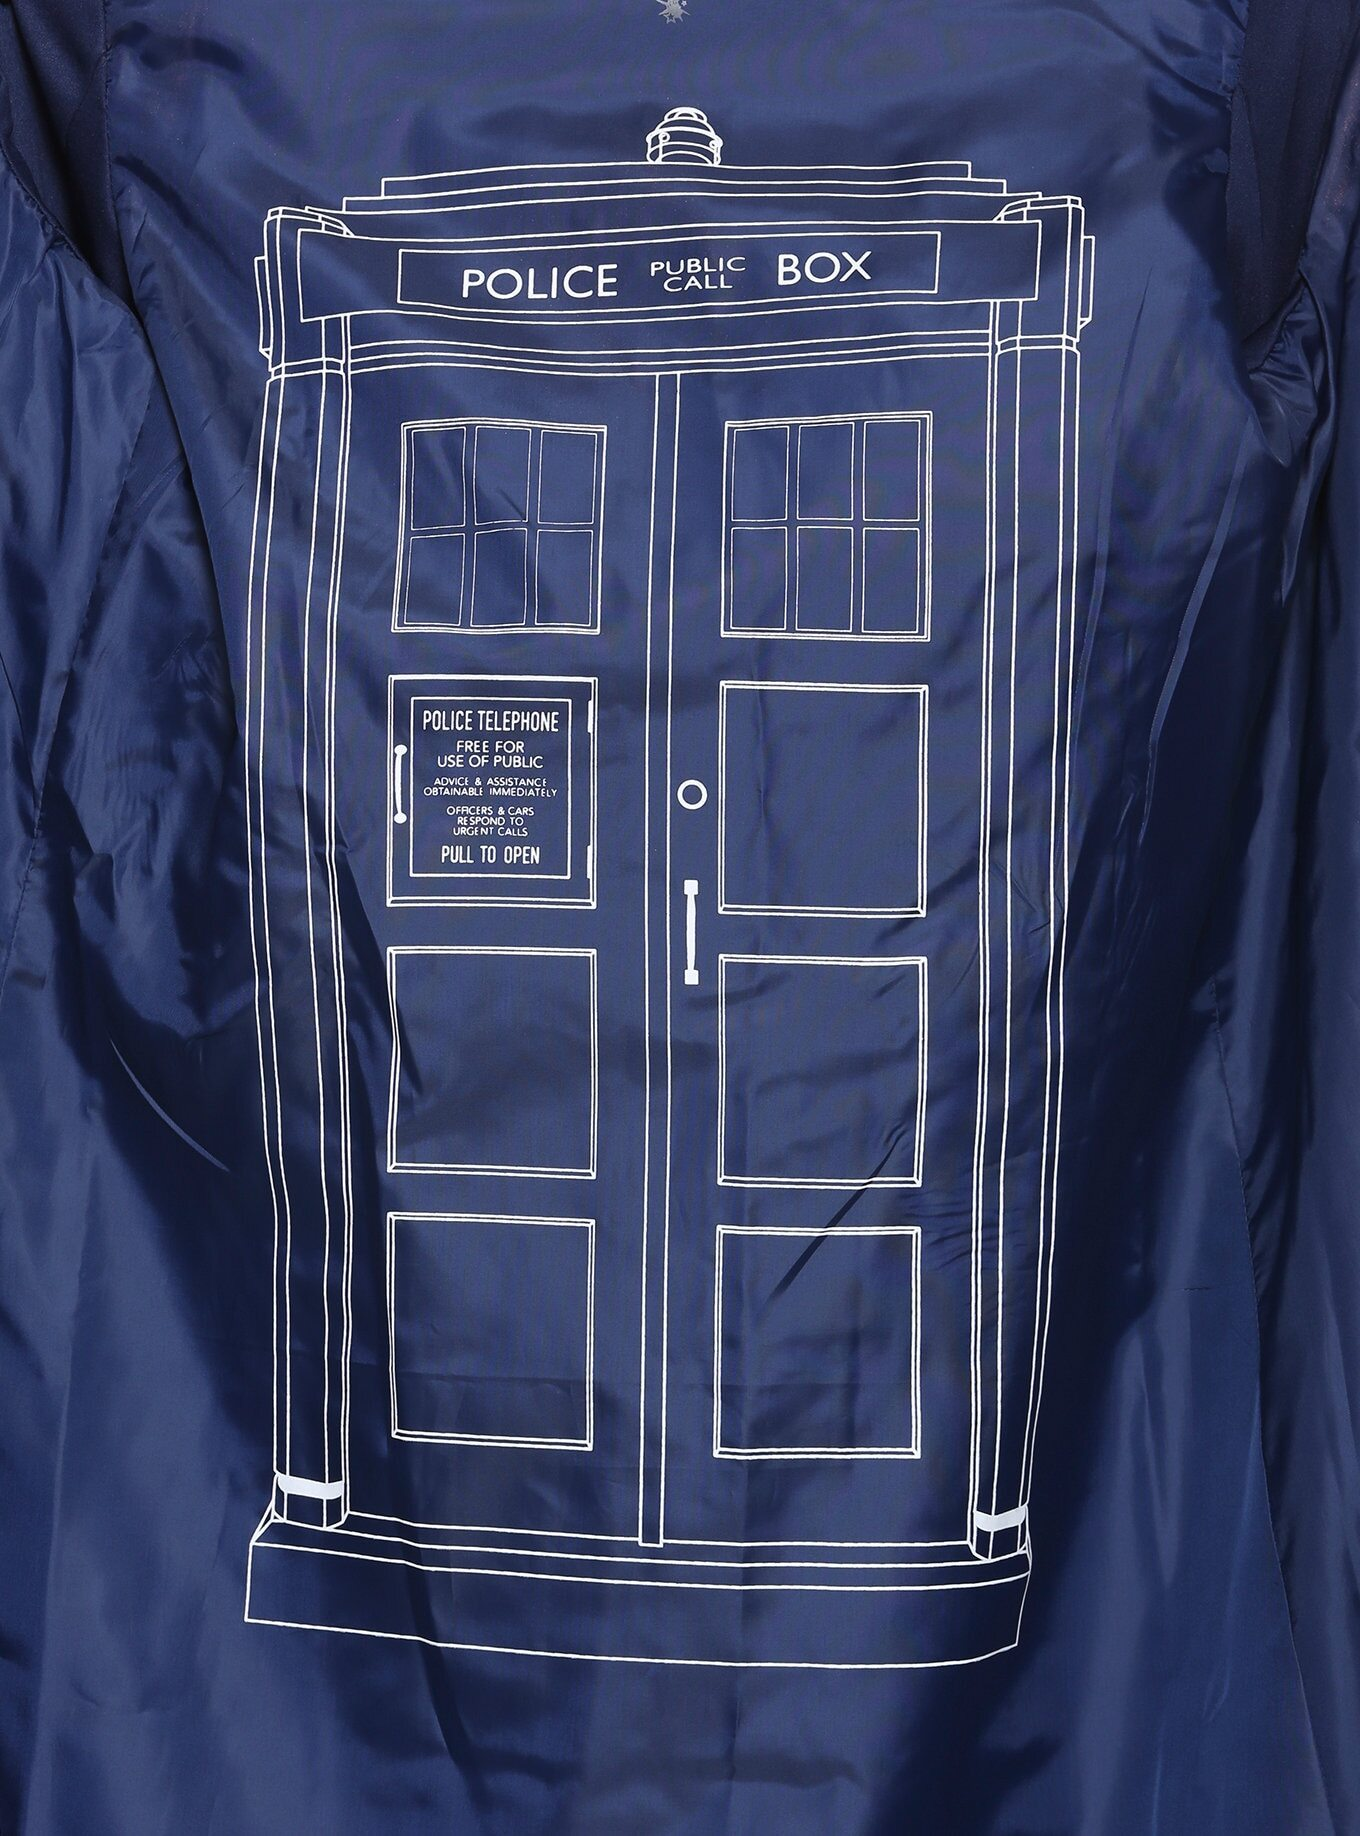 This Doctor Who trench coat is just in time for the 12th season premiere 23